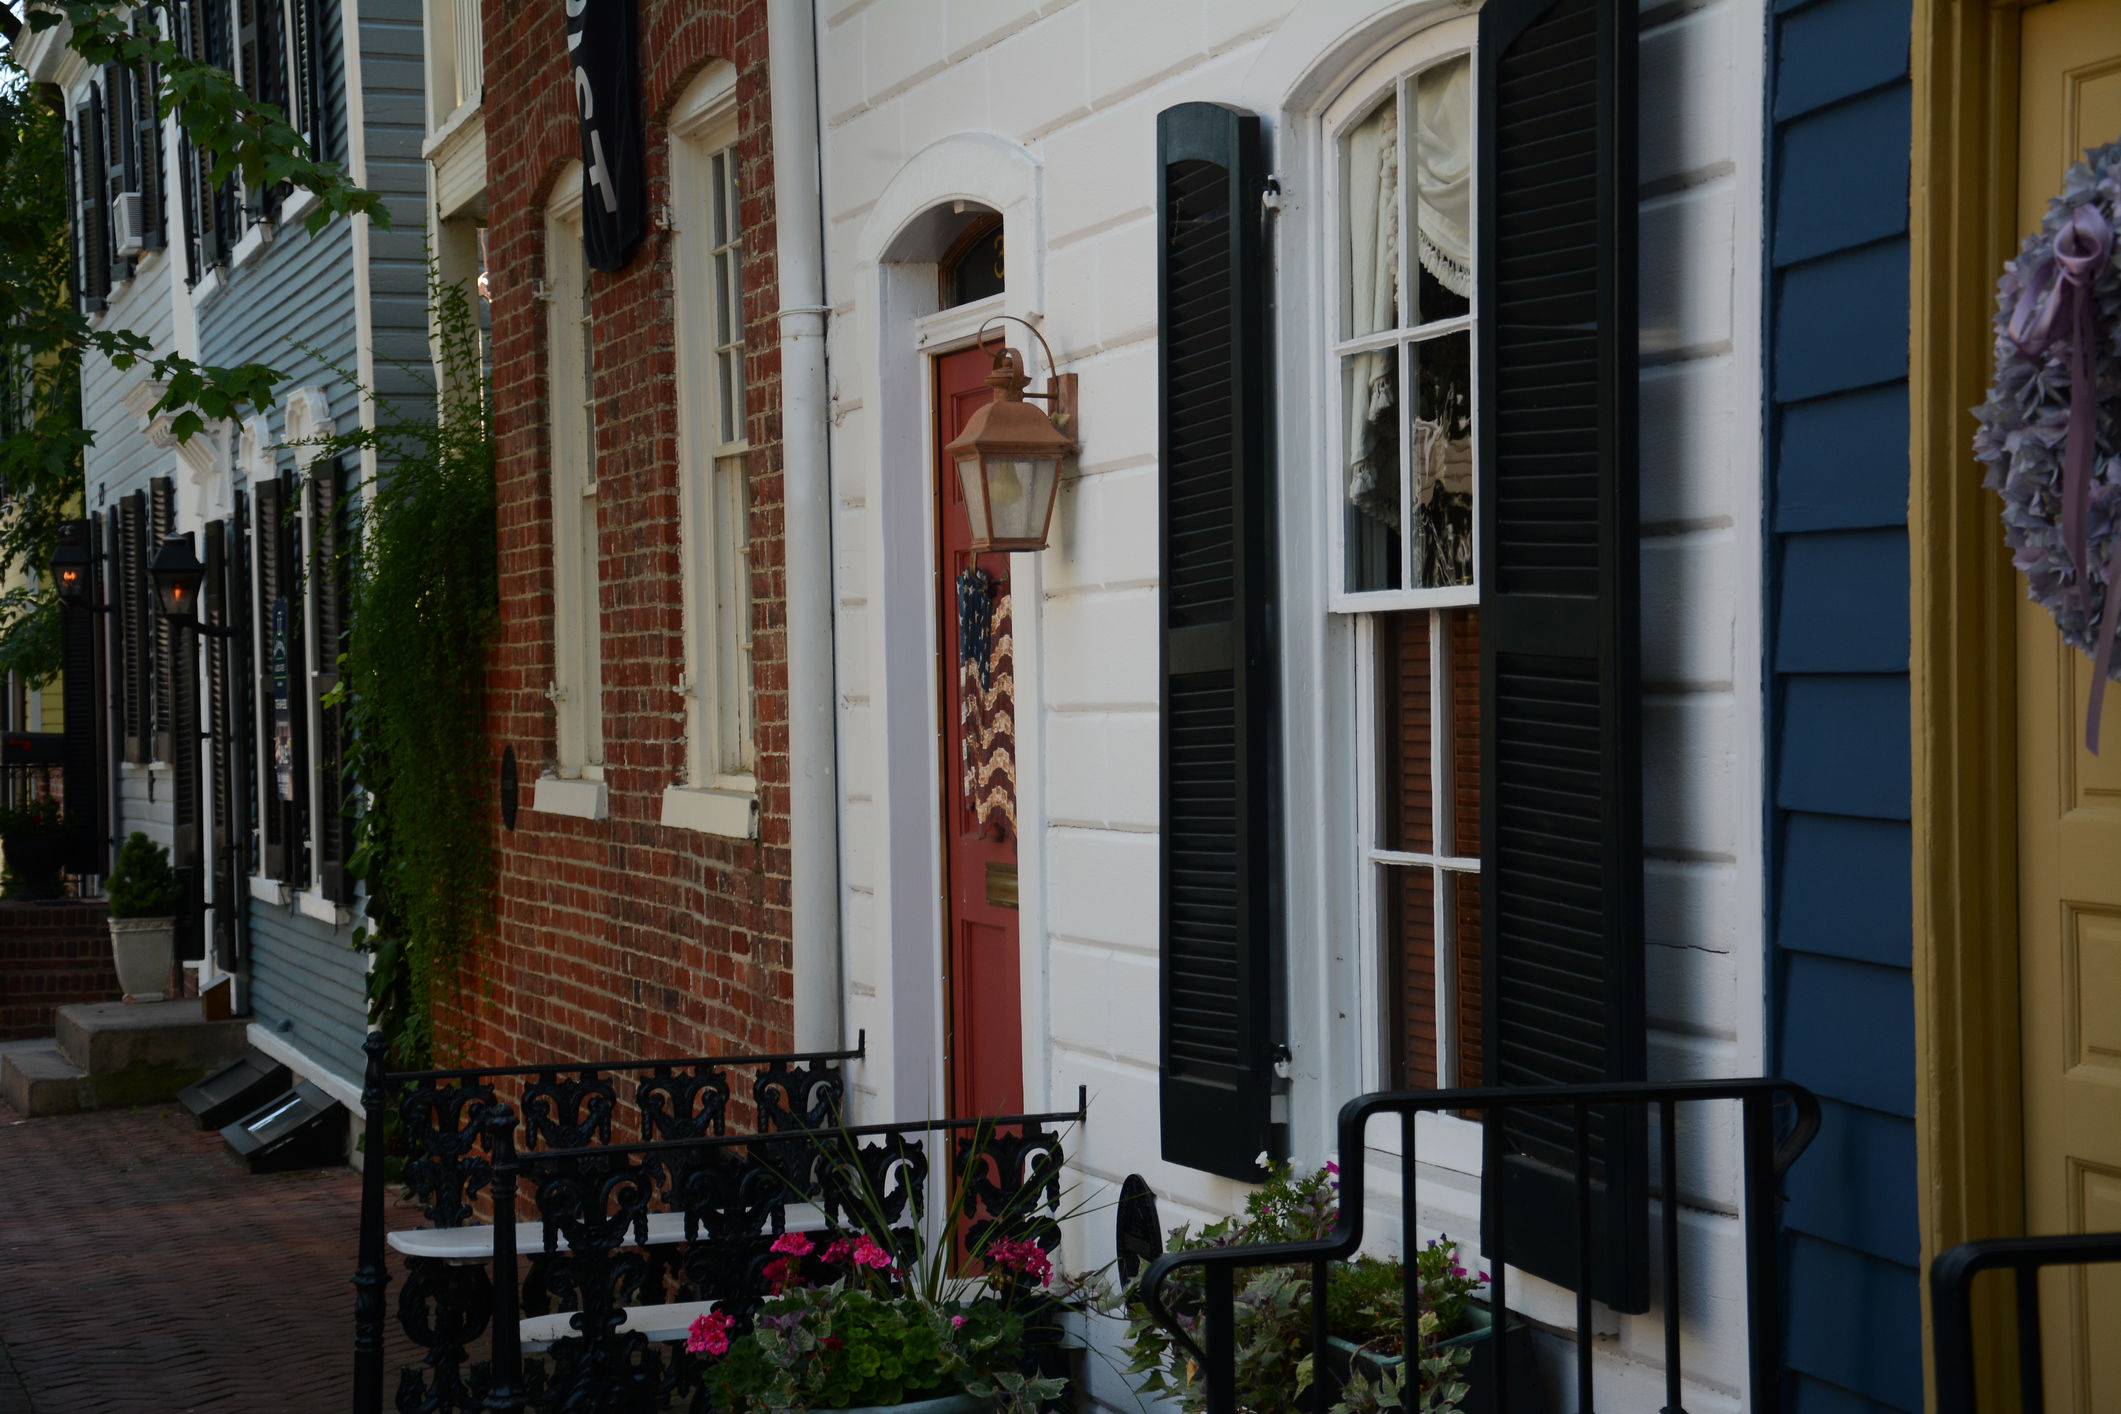 Charming townhouses in OldTown Alexandria